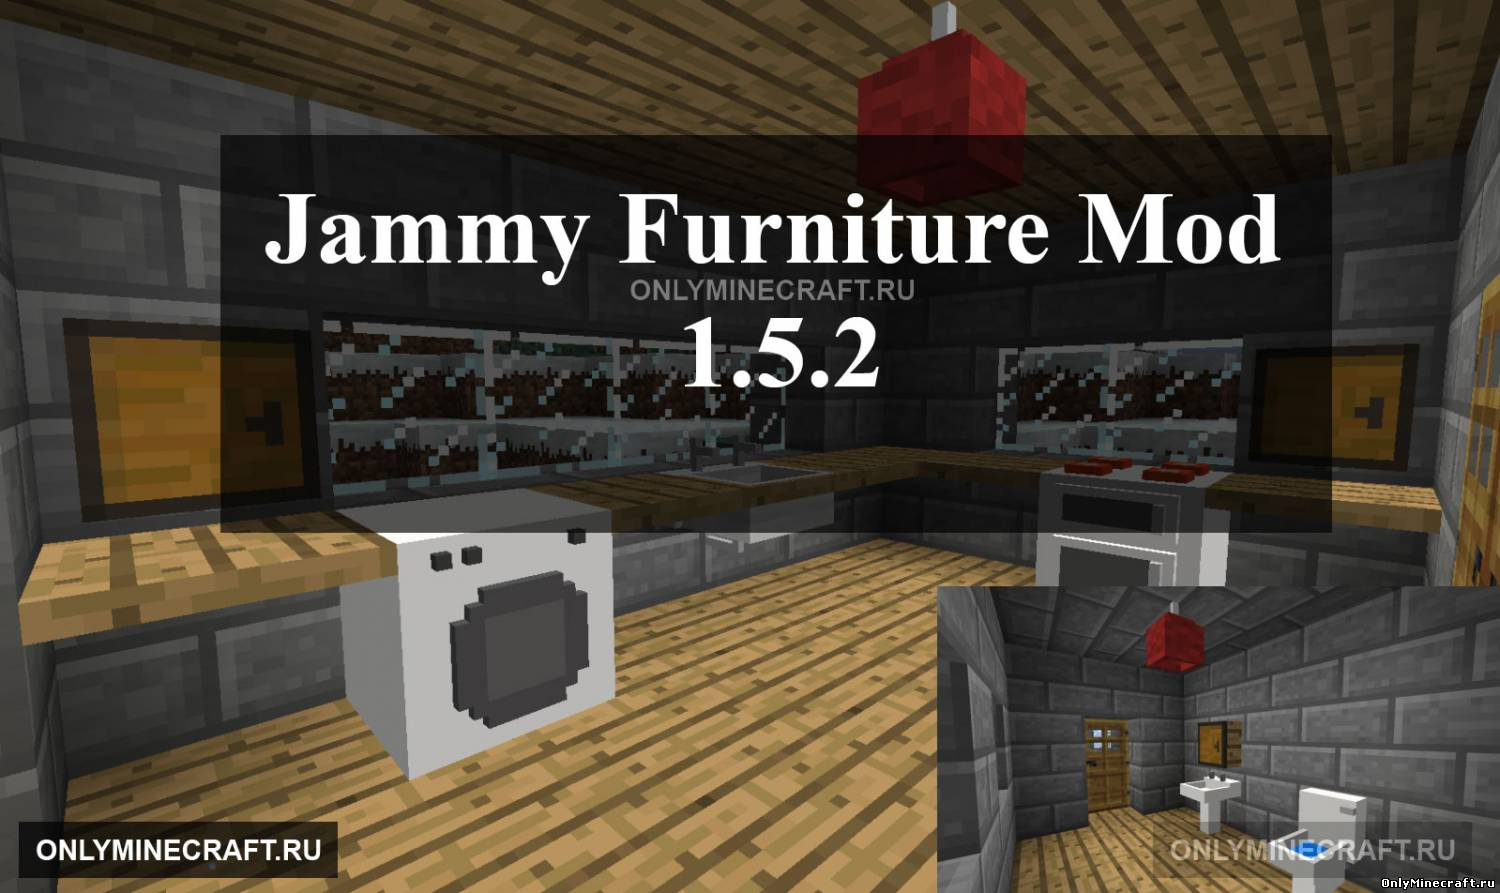 Jammy Furniture Mod